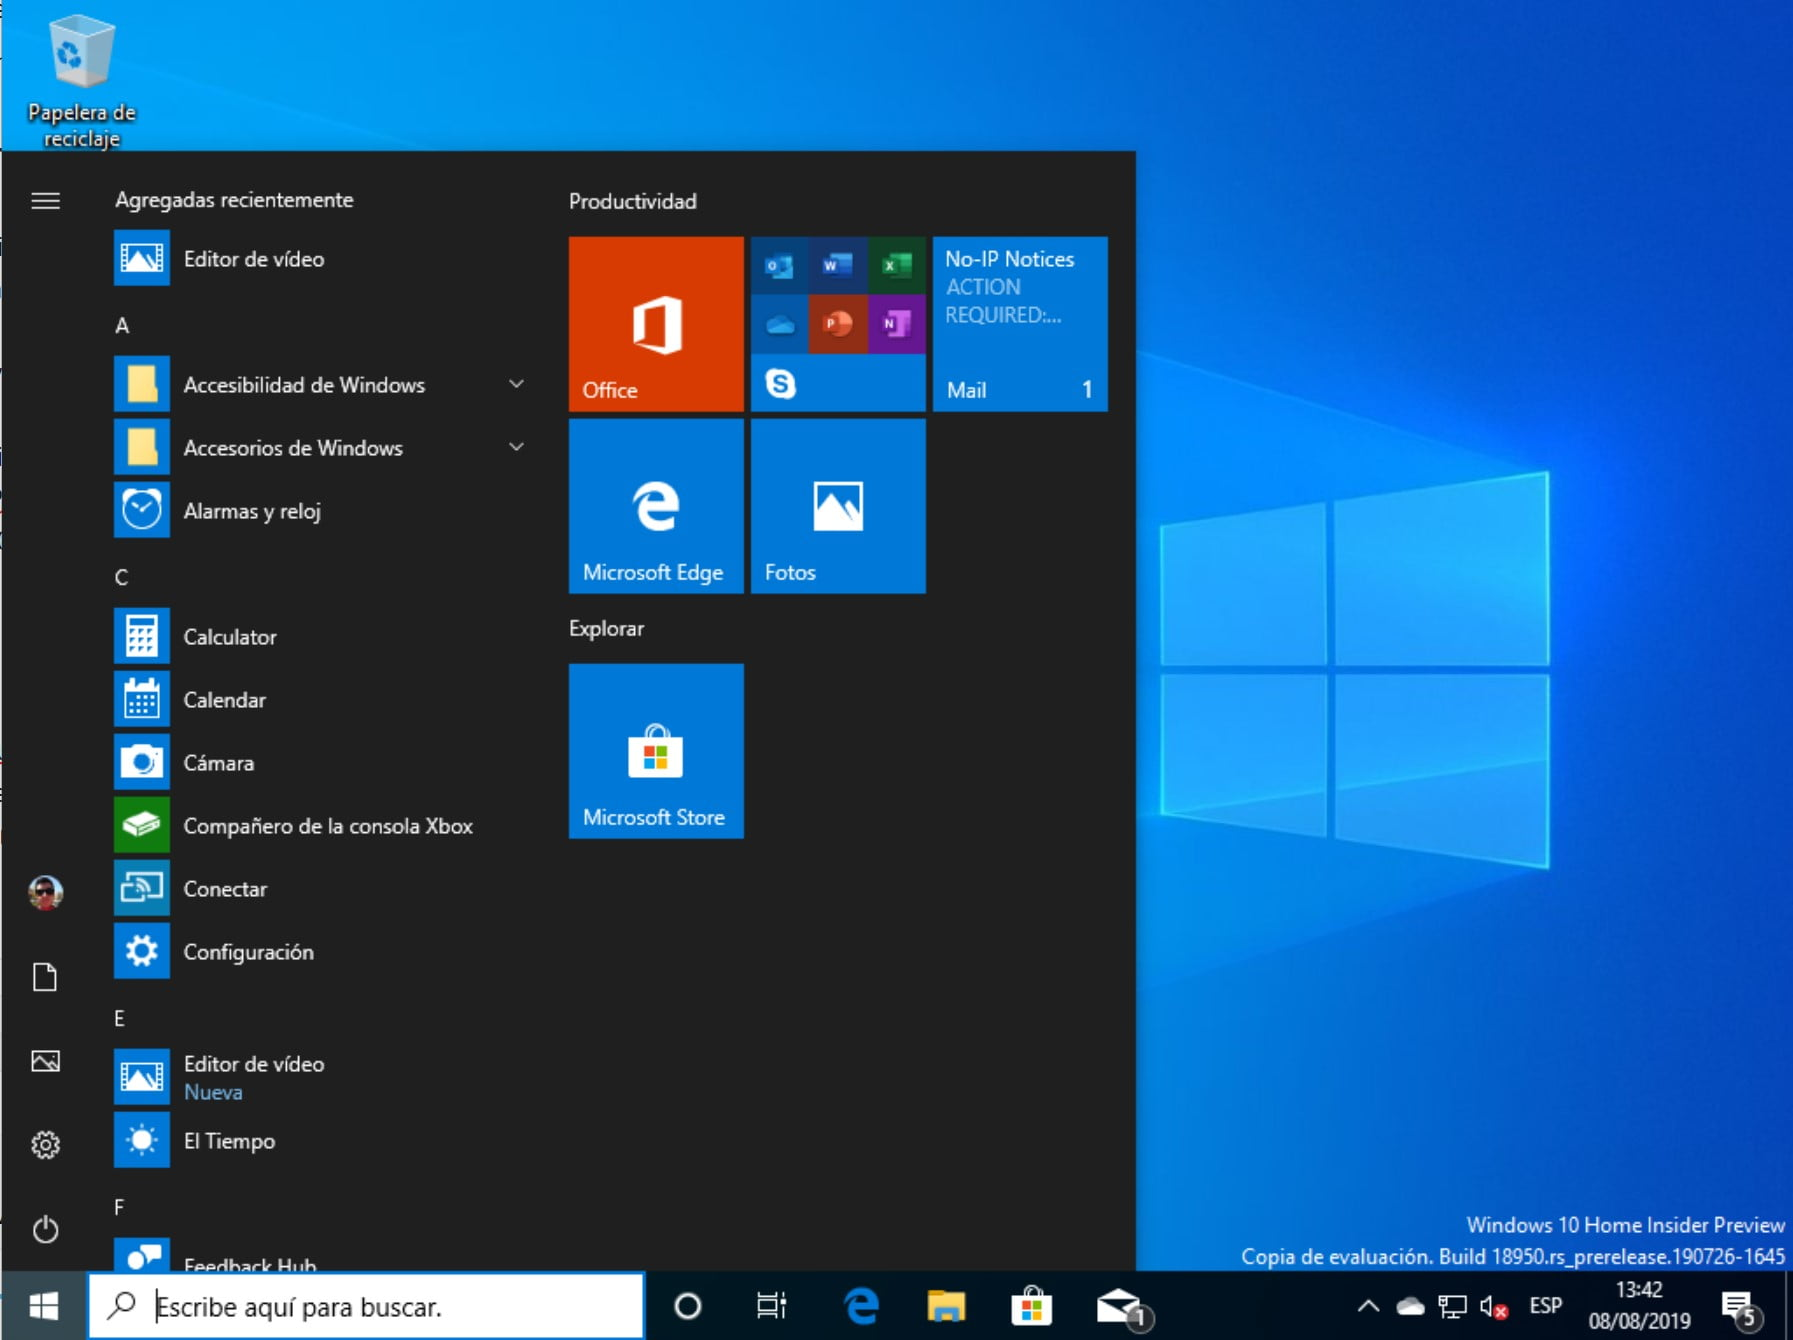 Menú inicio de Windows 10 20H1 con la Build 18950 sin Candy Crush y otro bloatware preinstalado